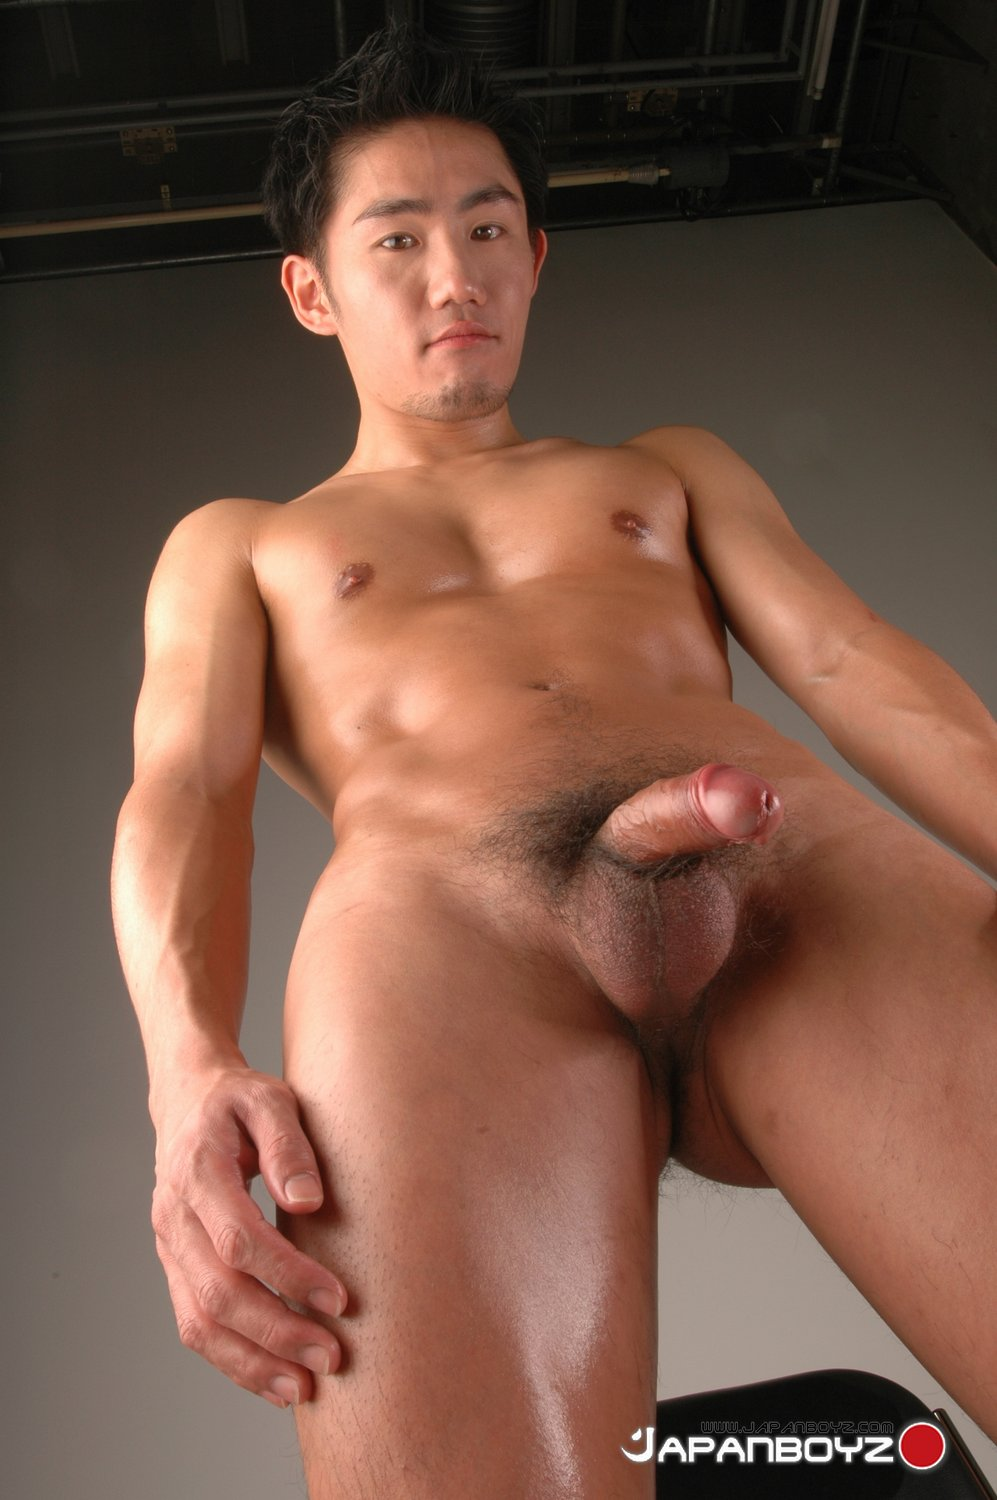 JapanBoyz-Erotic-Ninja-1-The-Hitman-3-torrent-asian-05 Asian Twink Gets Fucked Bareback with Cum in the Ass